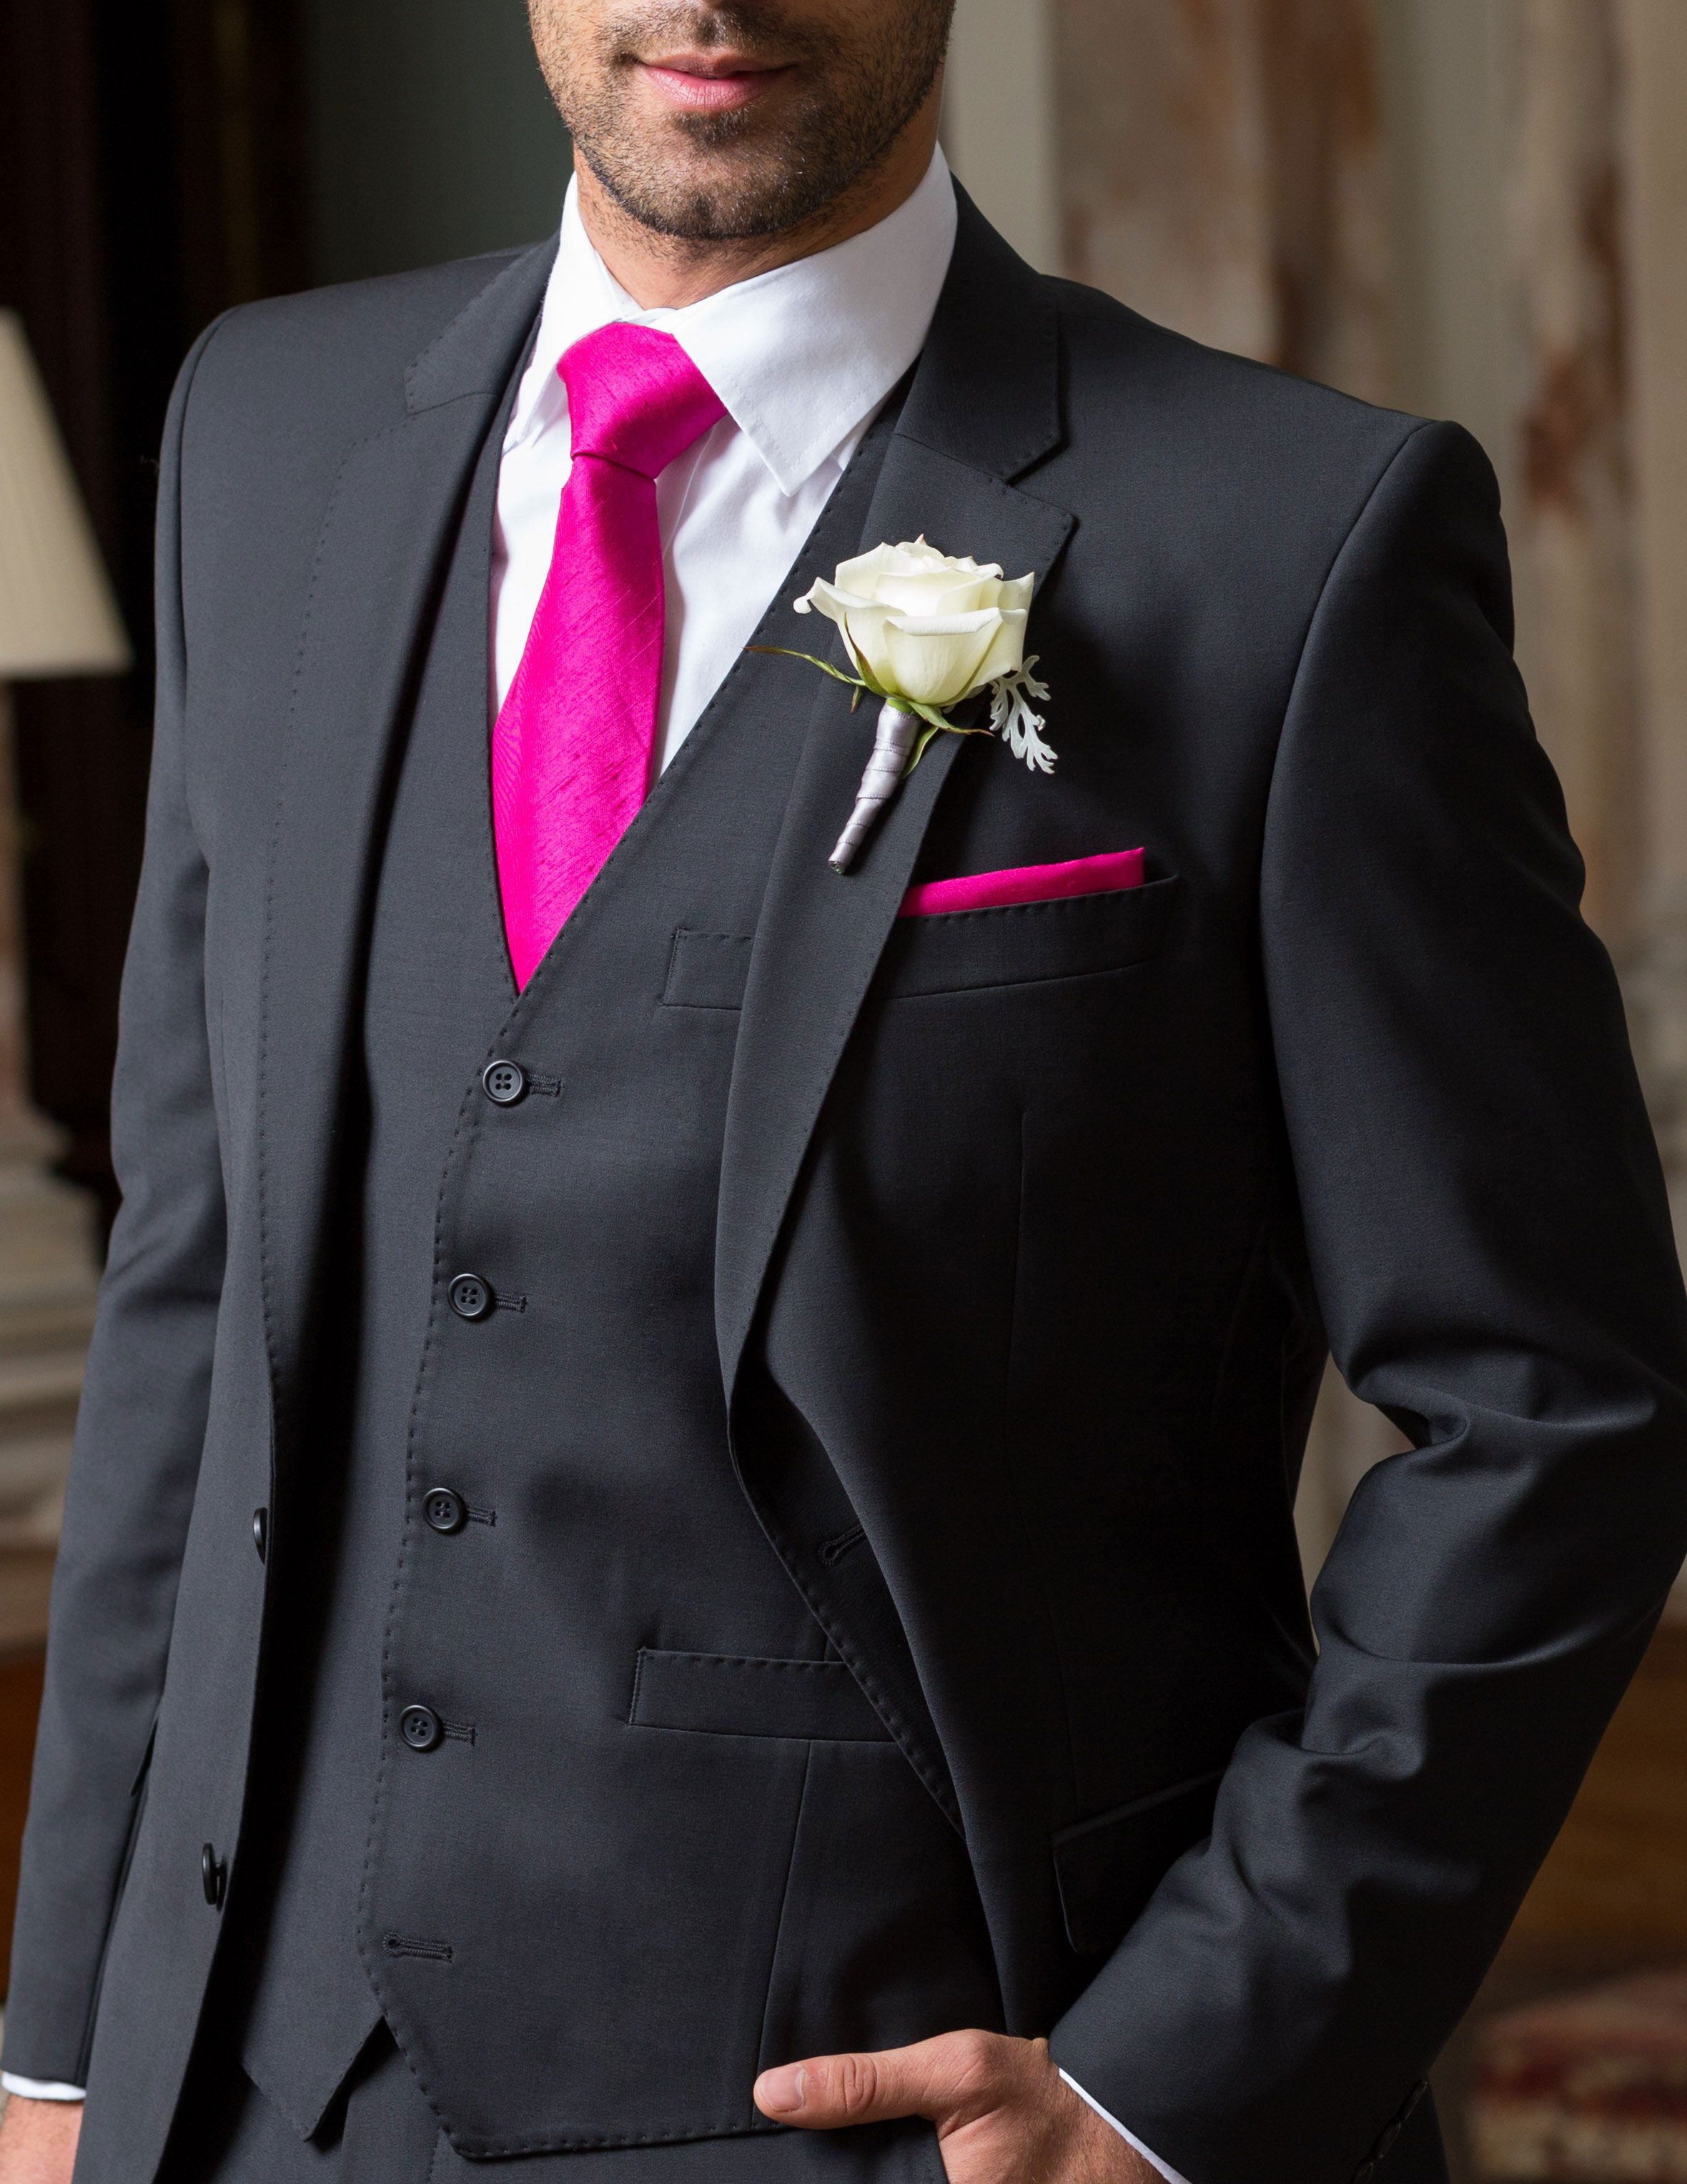 Black Three Piece Suit With Hot Pink Accessories For The